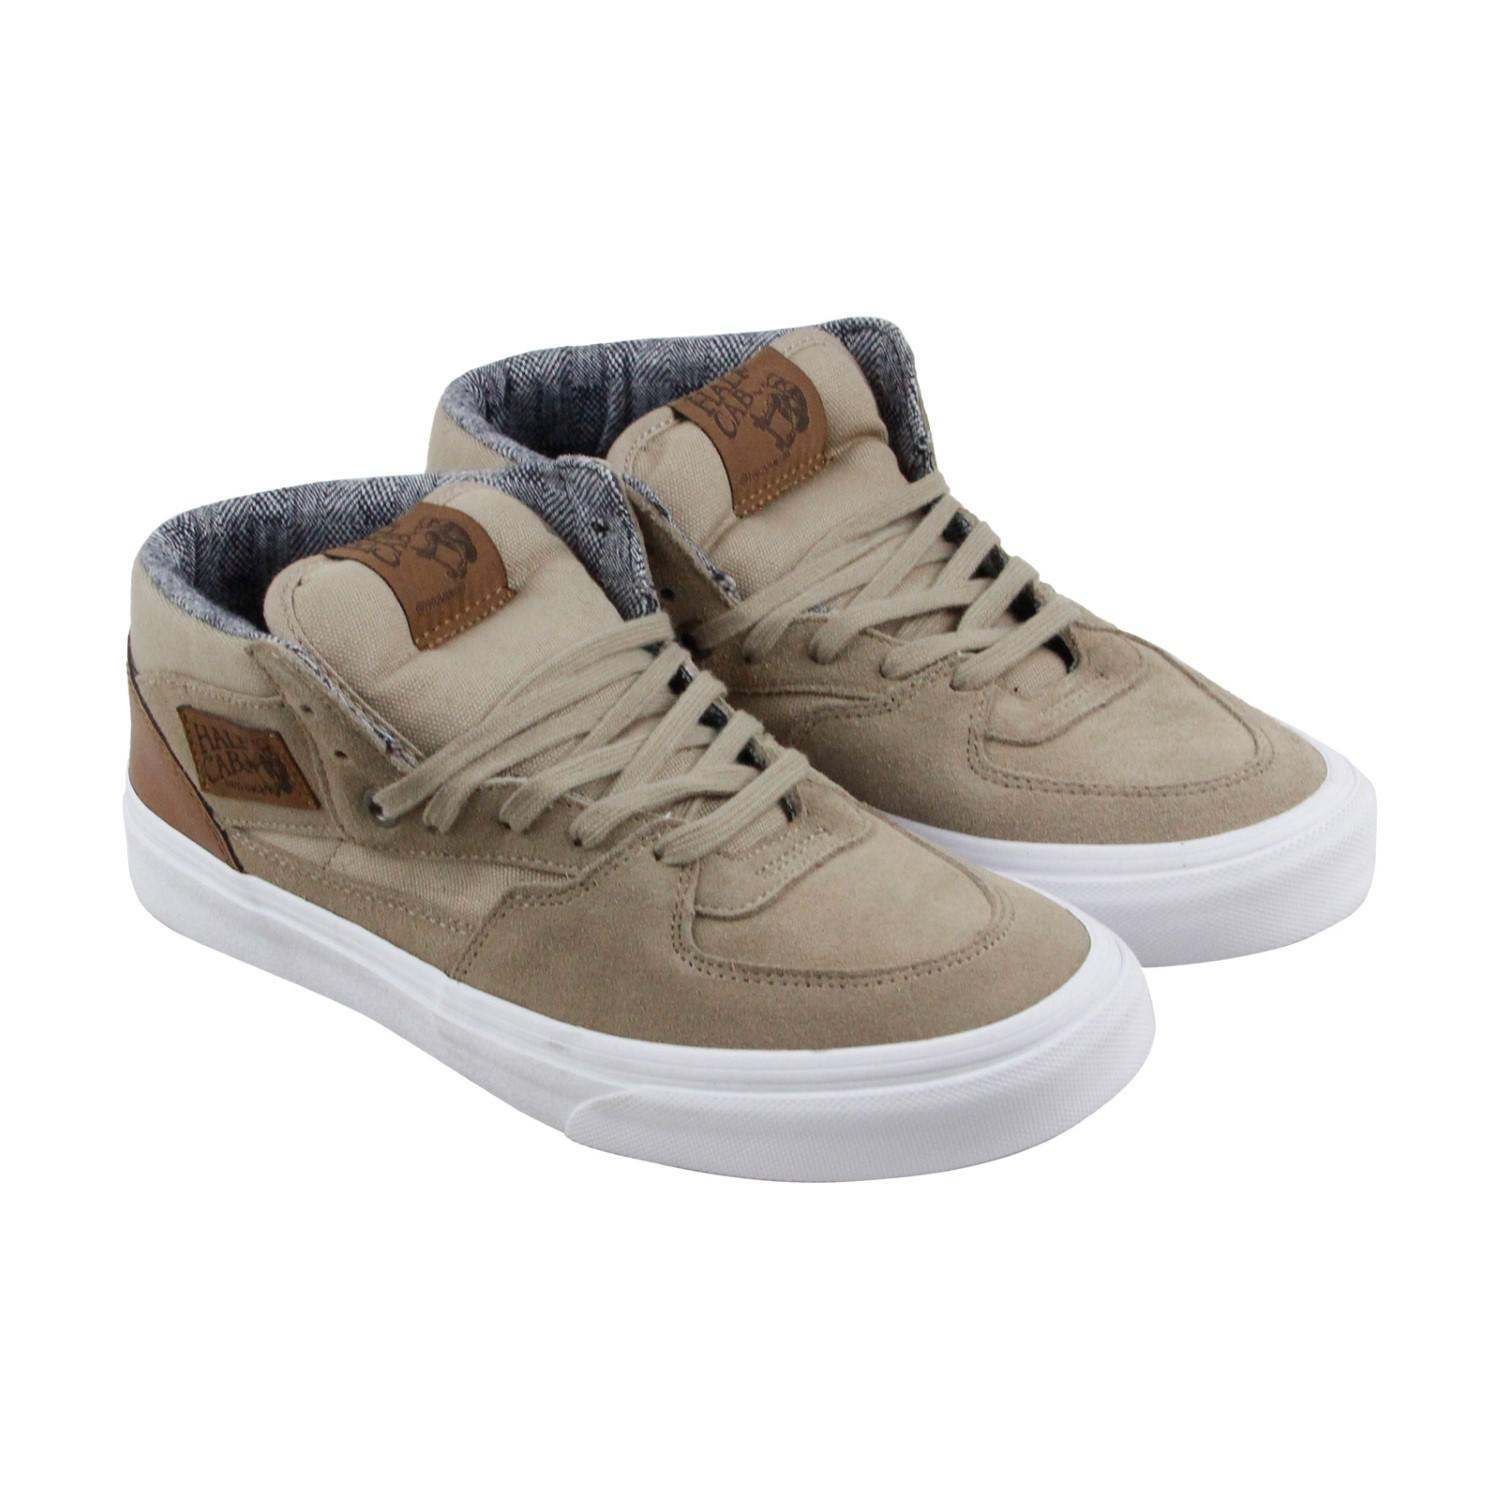 b79e9142e3 Lyst - Vans Half Cab Sil Silver Mink True White Lace Up Sneakers in ...